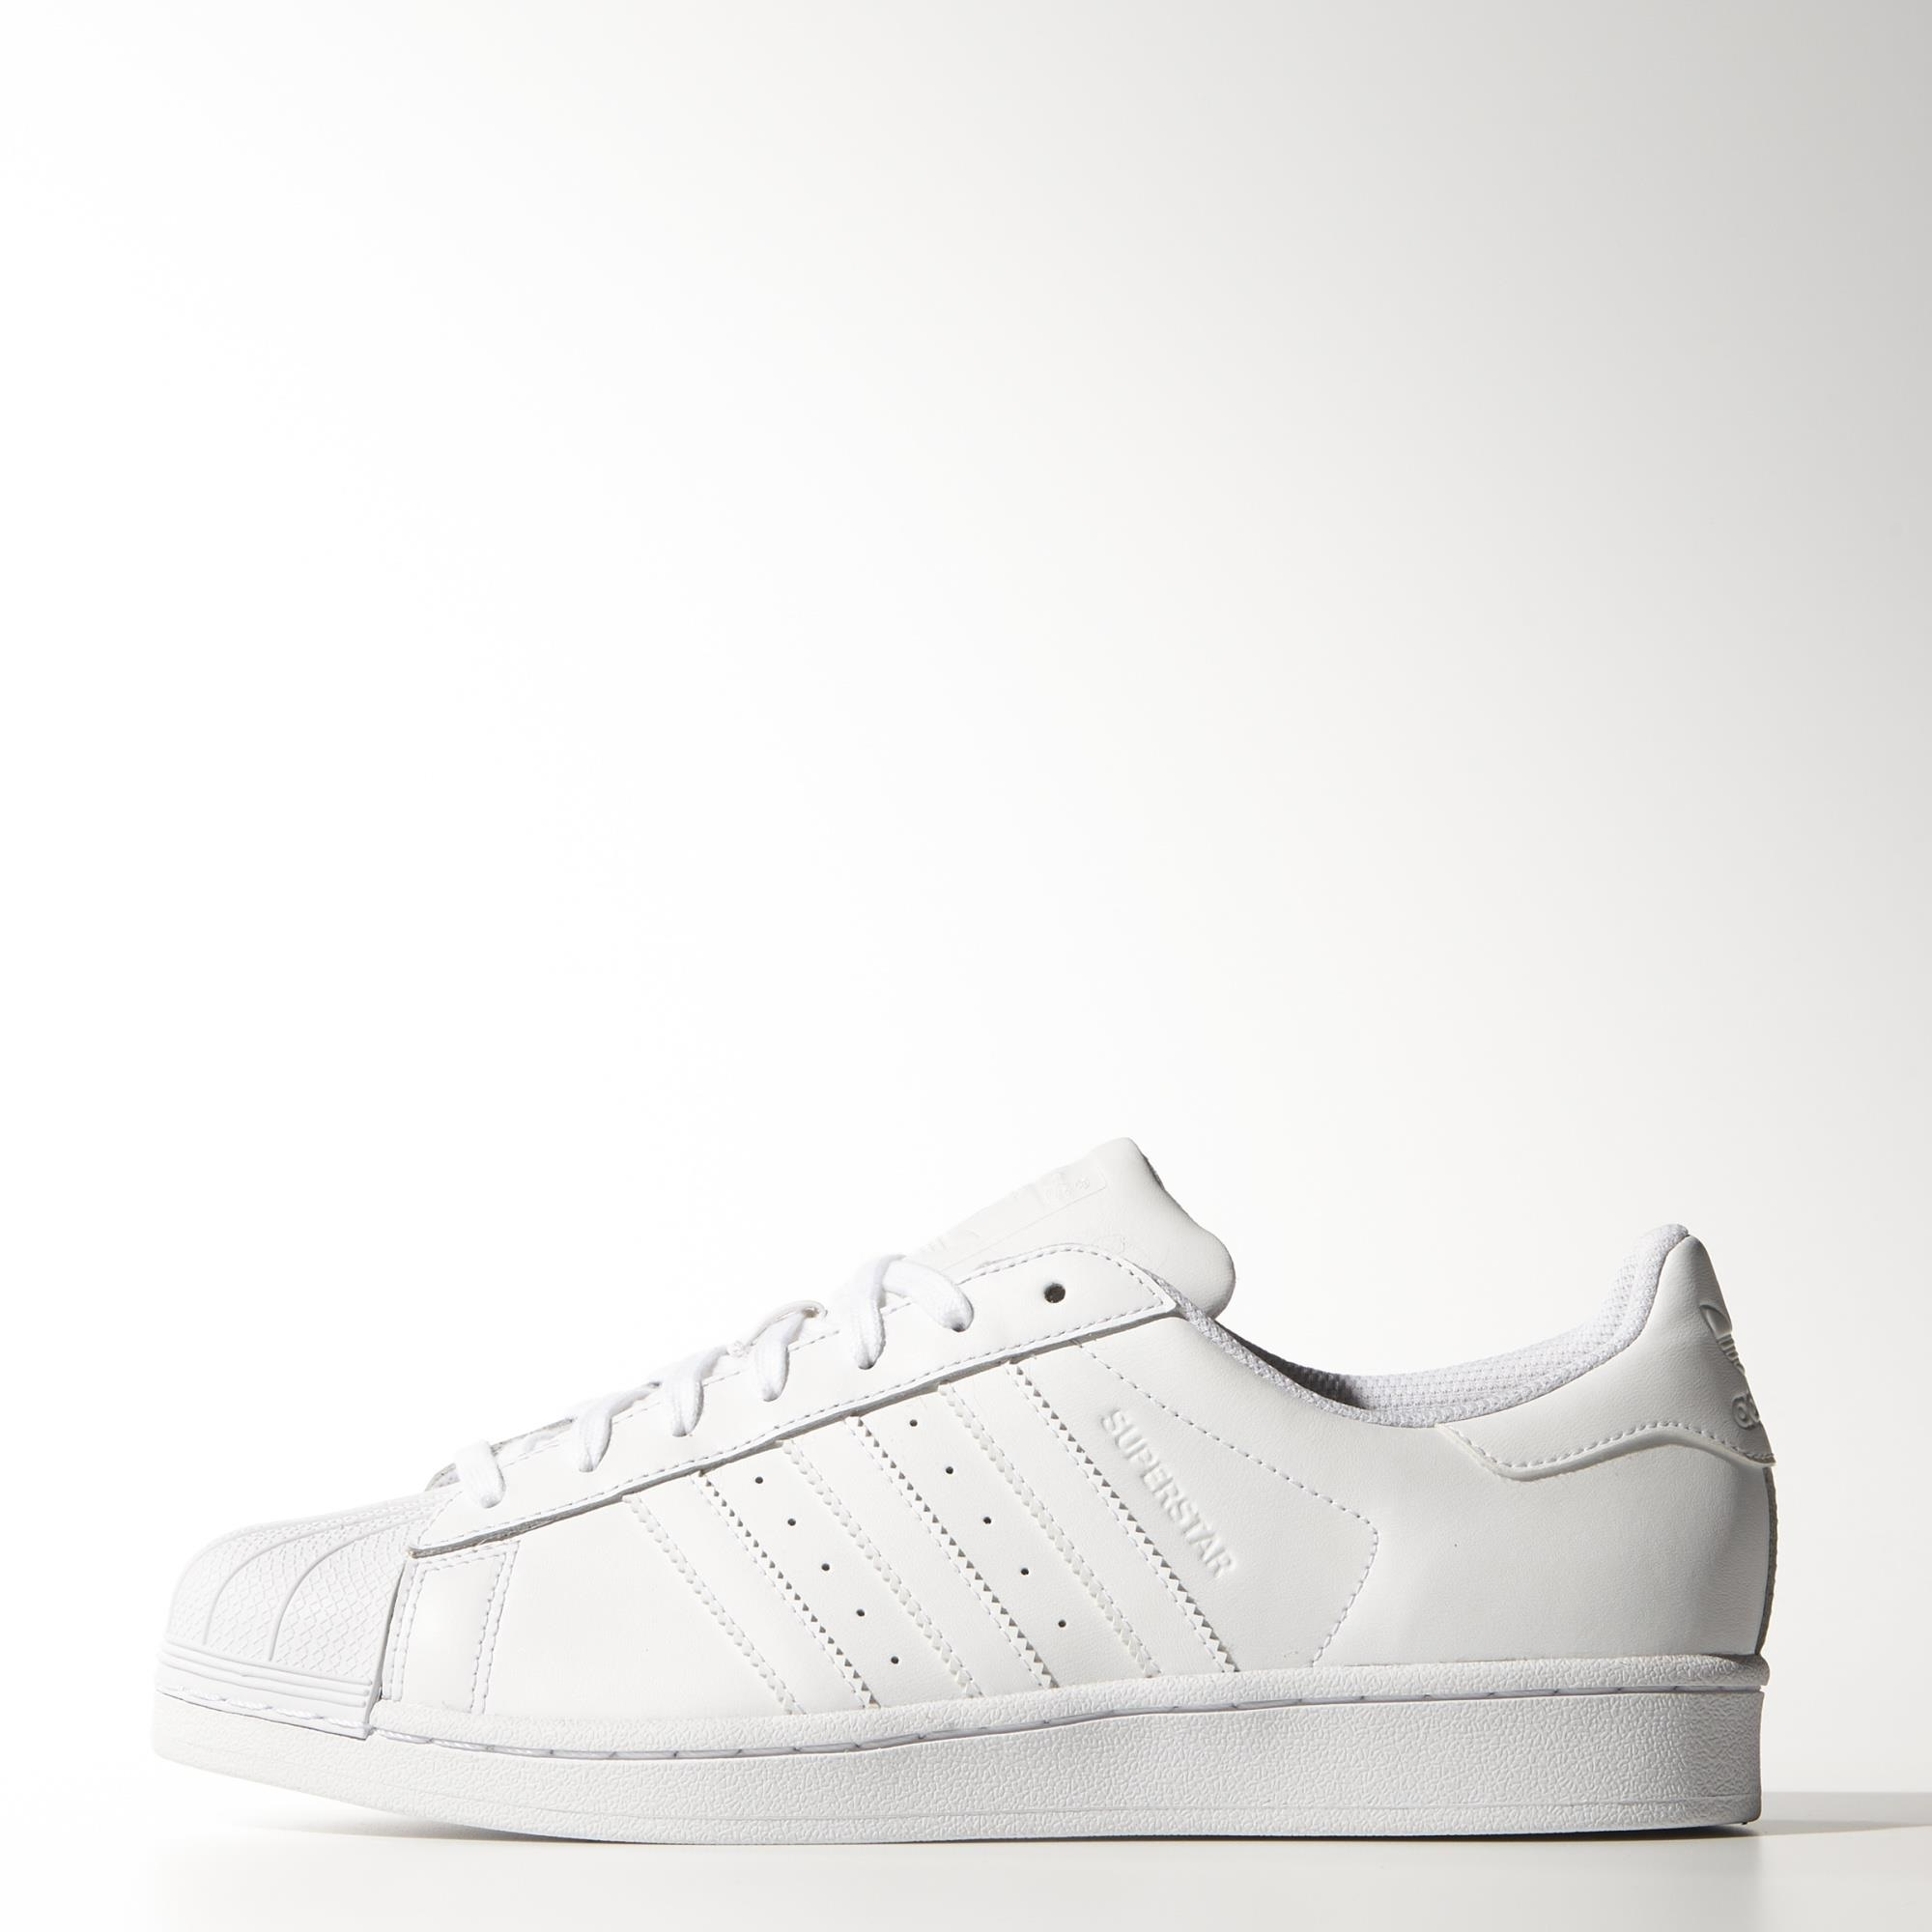 adidas Superstar Foundation Shoes - White  7577fcde1c9a7